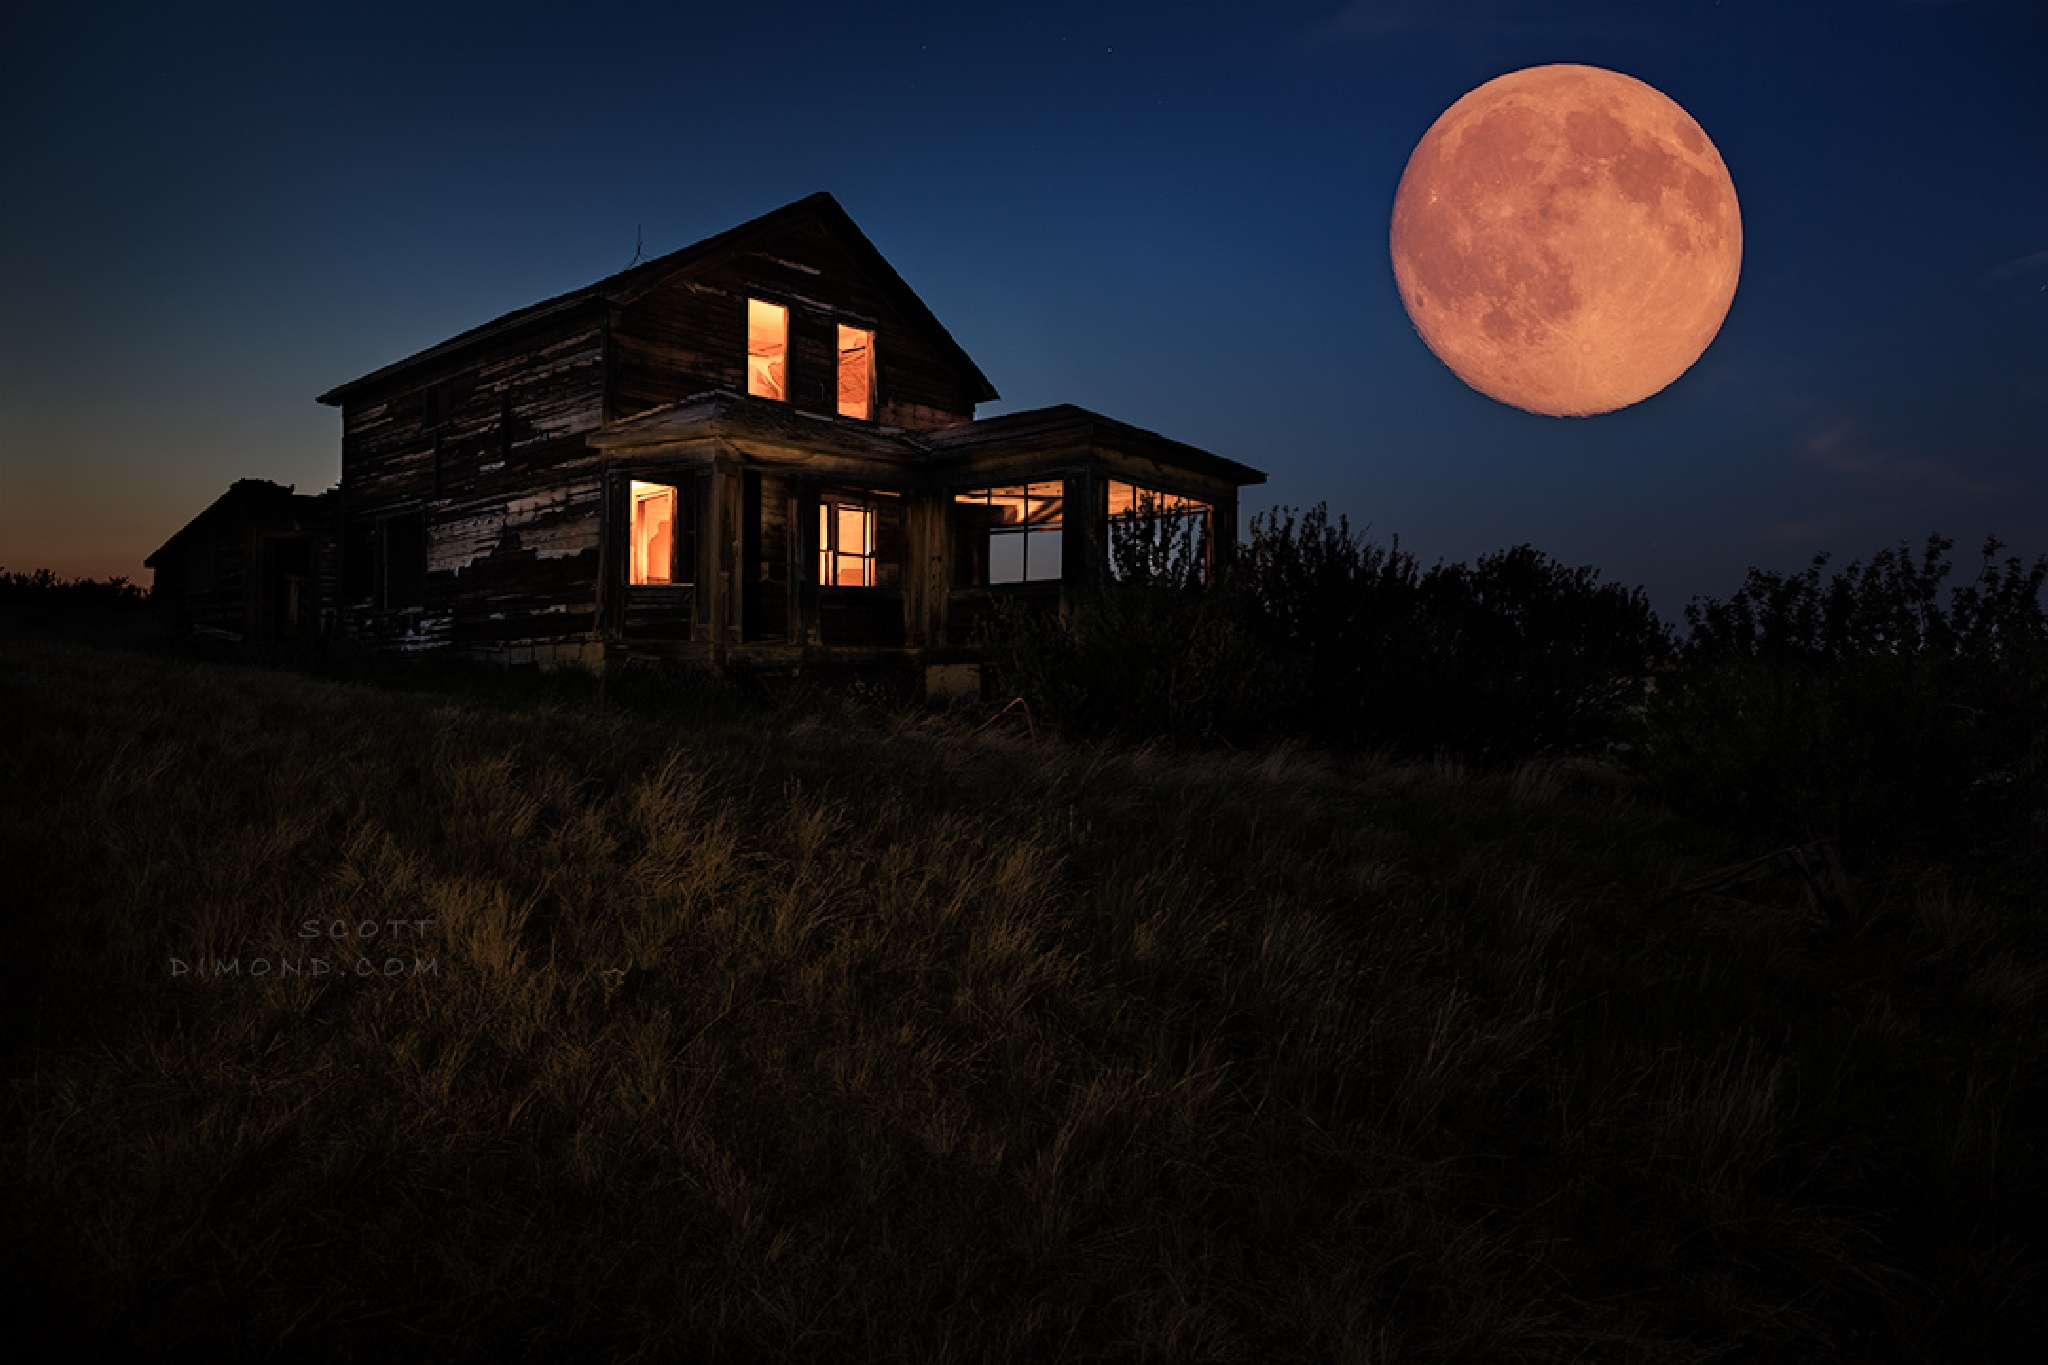 Full Moon Abandonment by GemstoneImages